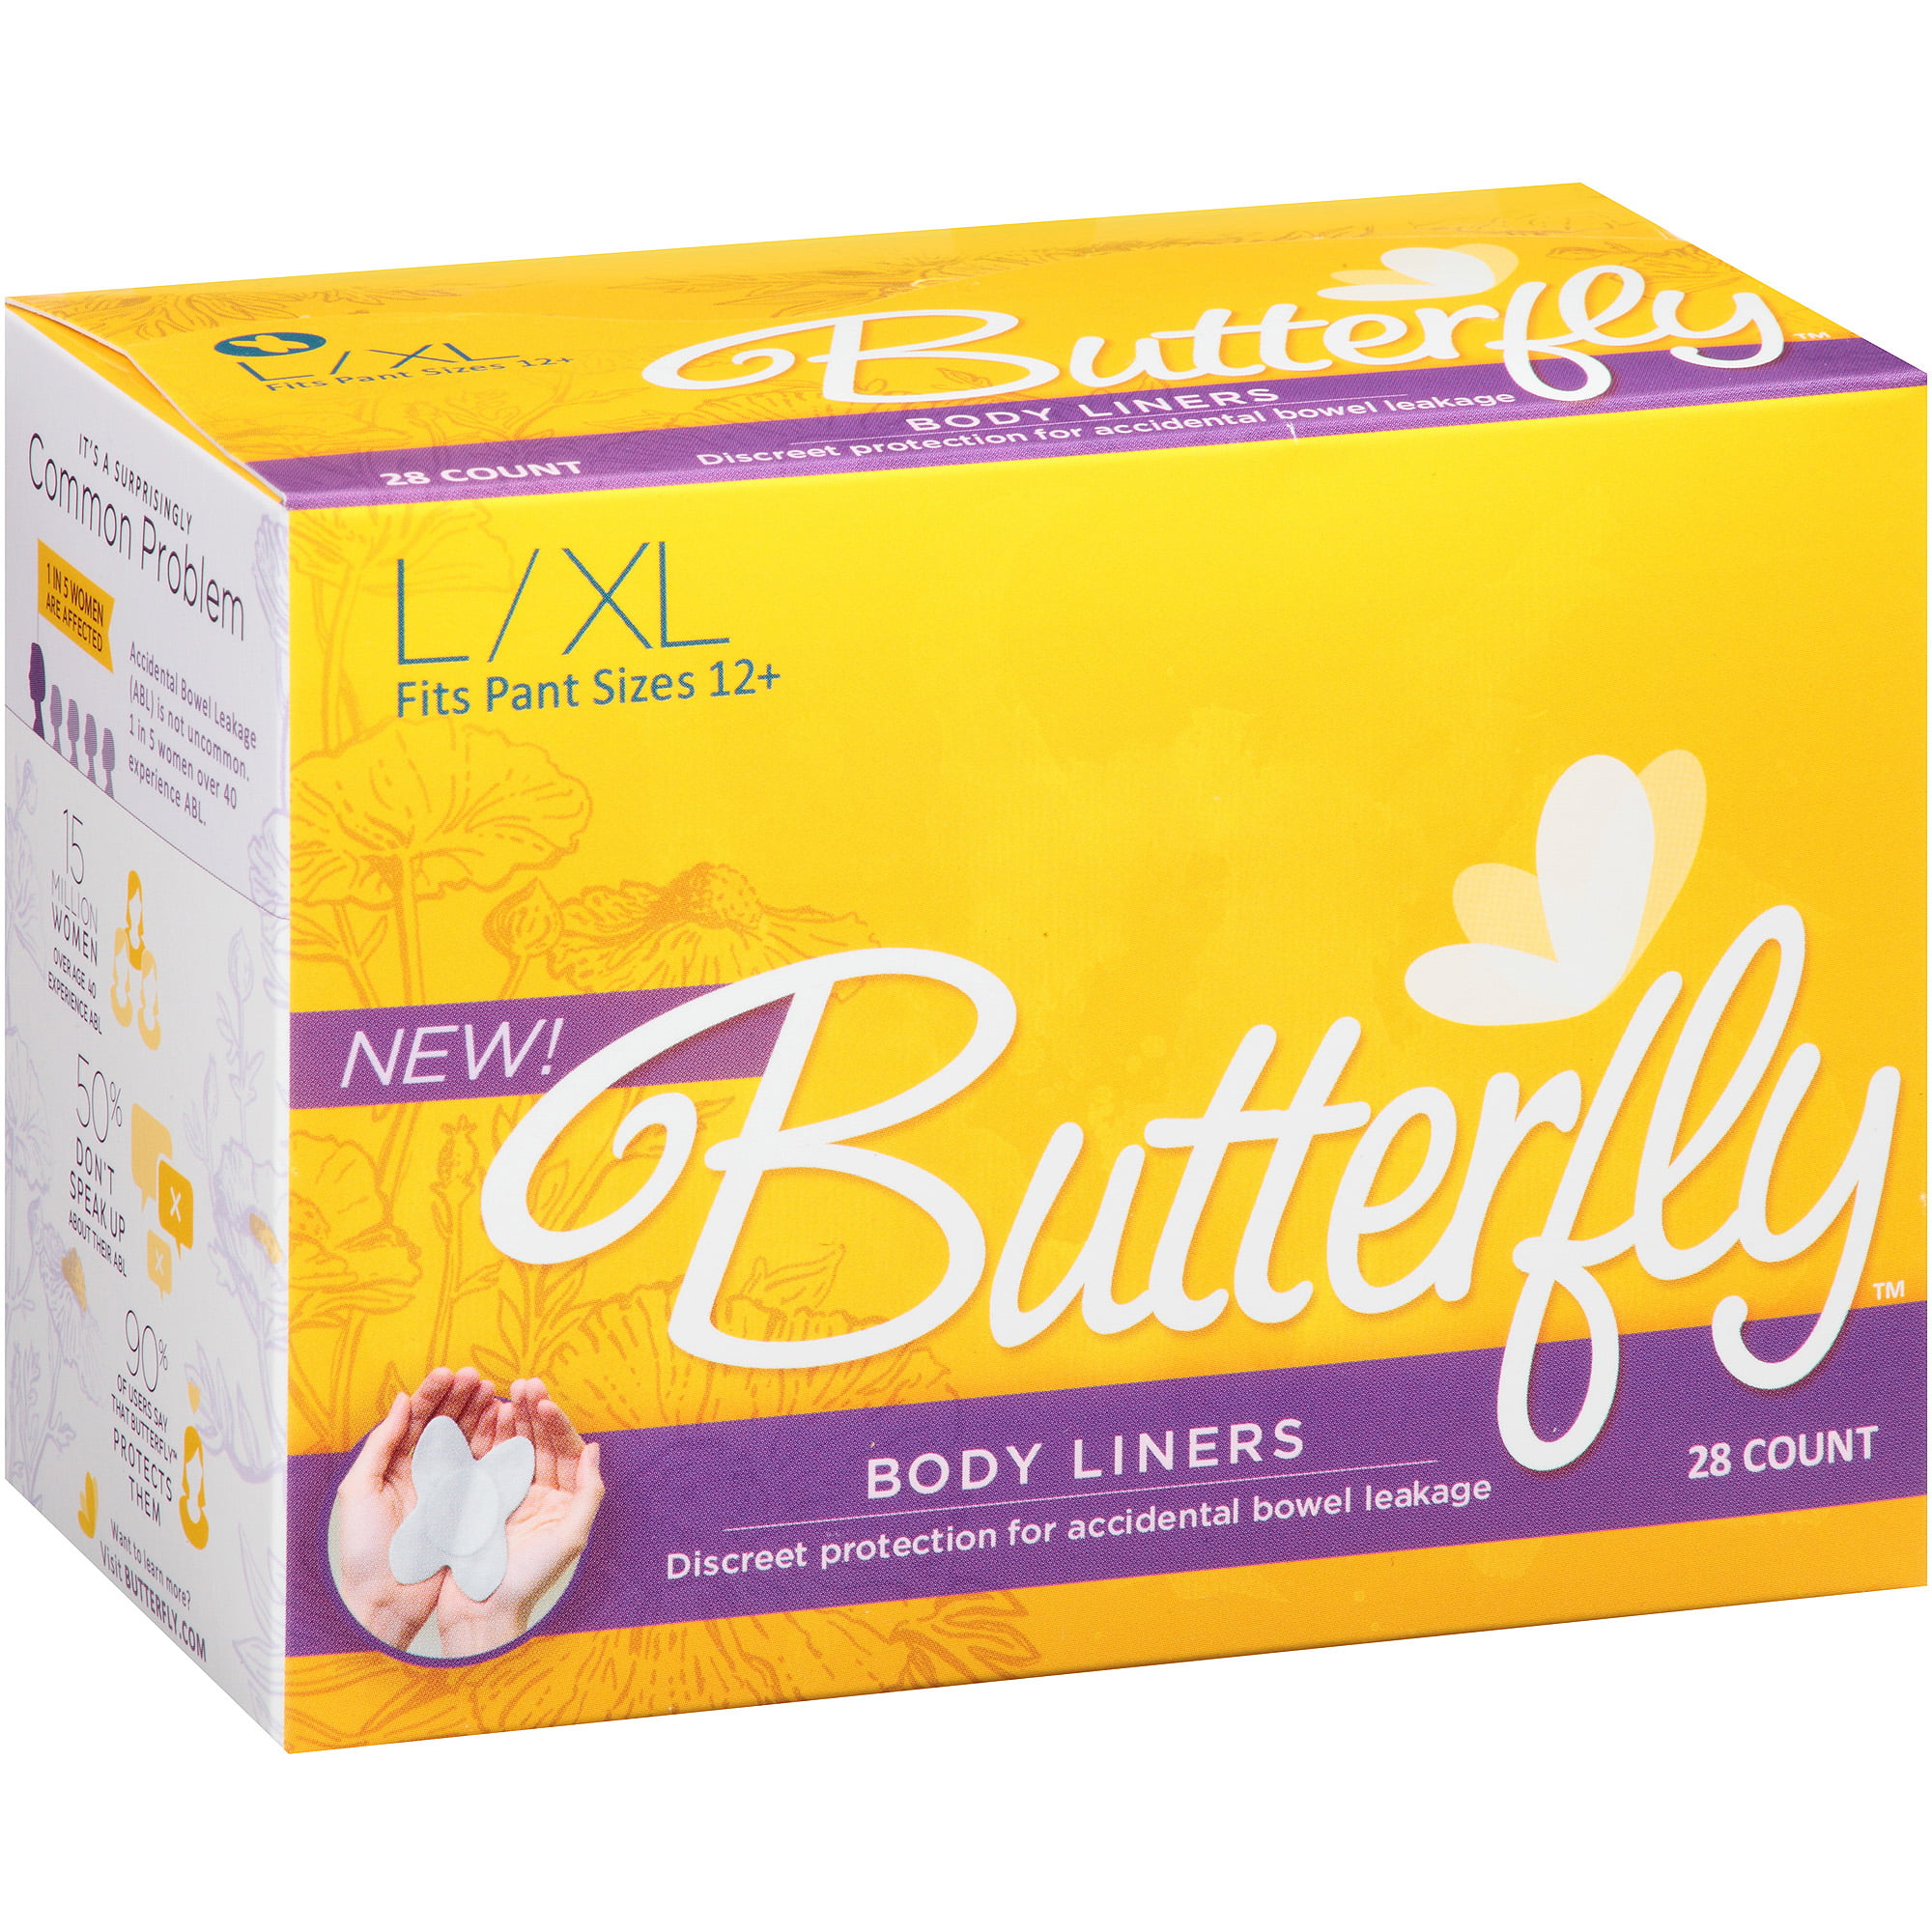 Butterfly Incontinence Care Body Liners for Women, Large/Extra Large